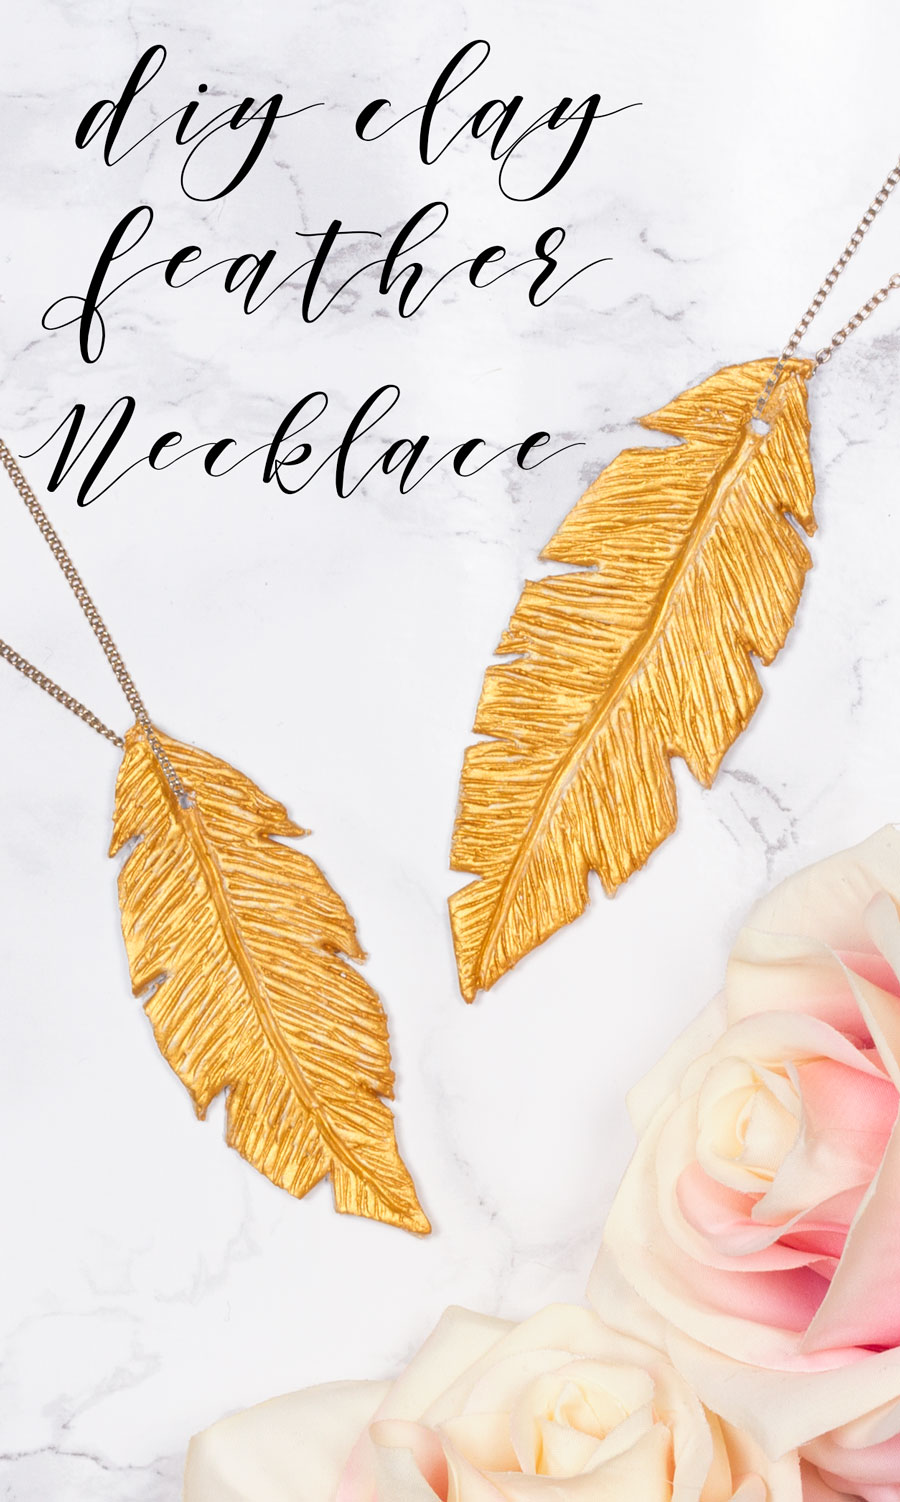 These gold feather necklaces are a simple but effective craft. They make a lovely handmade gift. Instructions here.